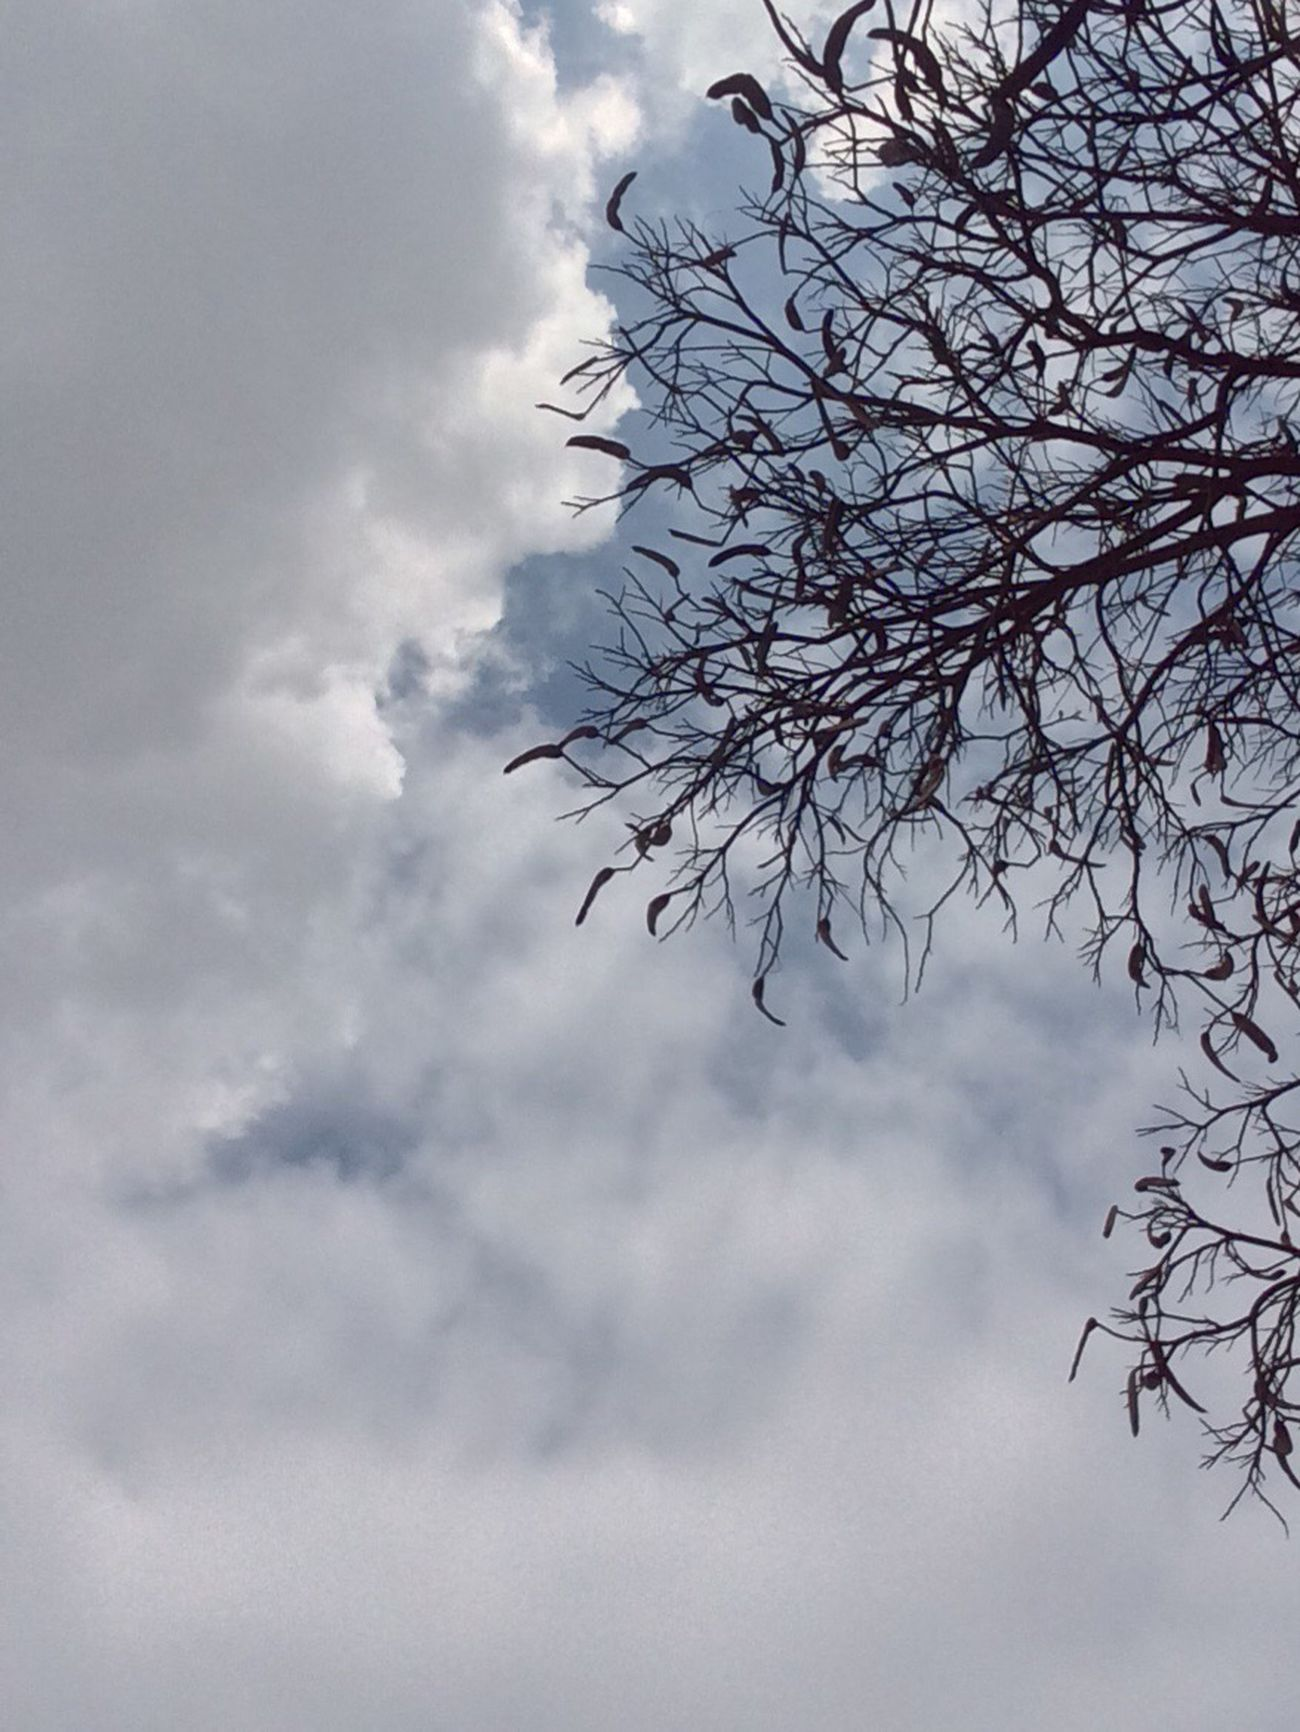 Cloud - Sky Sky Low Angle View Tree Nature No People Bare Tree Beauty In Nature Branch Outdoors Tranquility Day Nature IPhoneography Tree Iphonephotography مصر شجر Thisisegypt Livelovecairo Liveloveegypt Cloud Clouds And Sky Winter Clouds